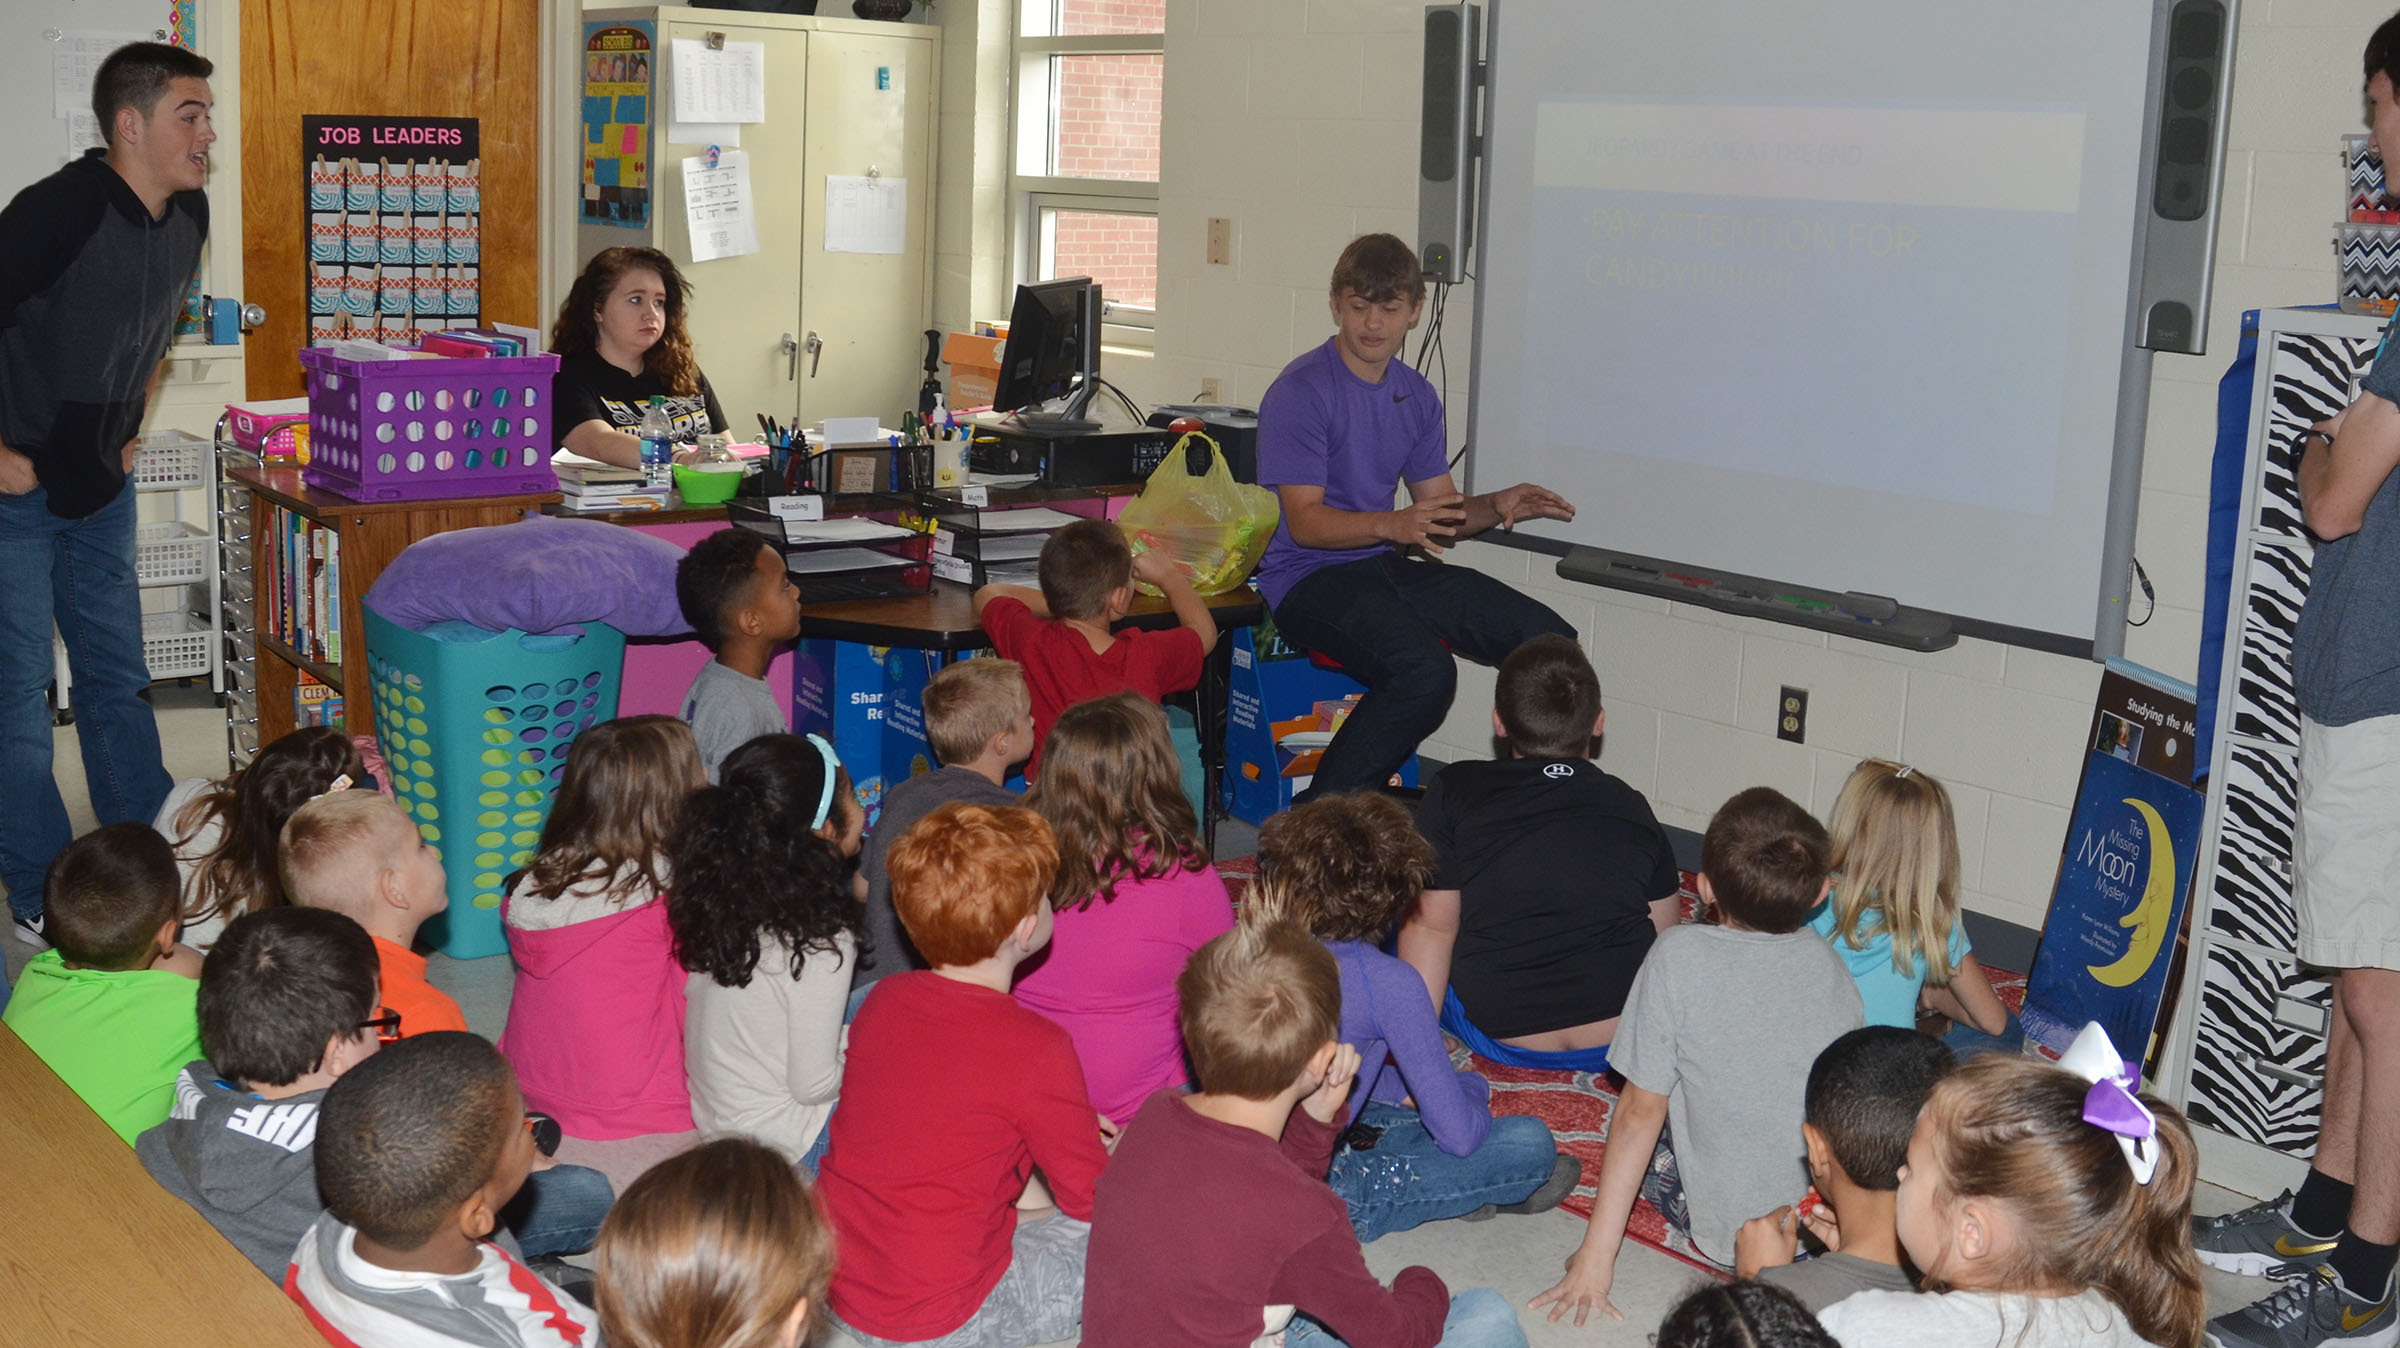 CHS sophomores, from left, Ryan Kearney, Leslie McKenzie, Treyce Mattingly and Ian McAninch talk to CES second-graders about government.